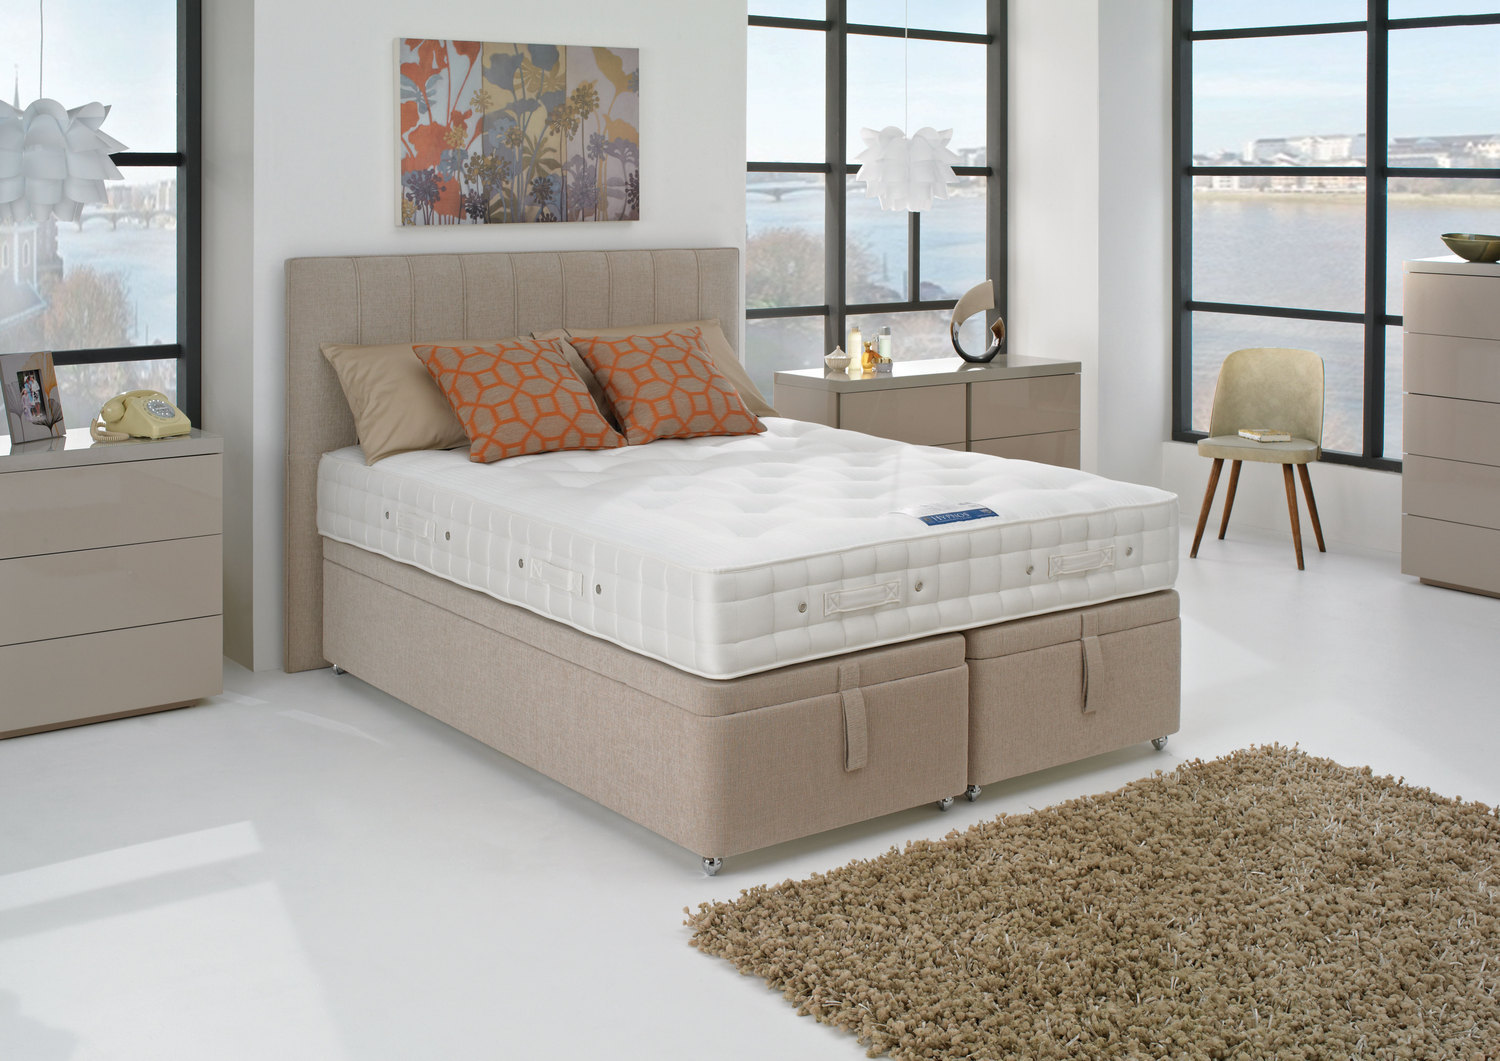 Hypnos orthocare 8 divan bed firm from for Double divan bed with firm mattress